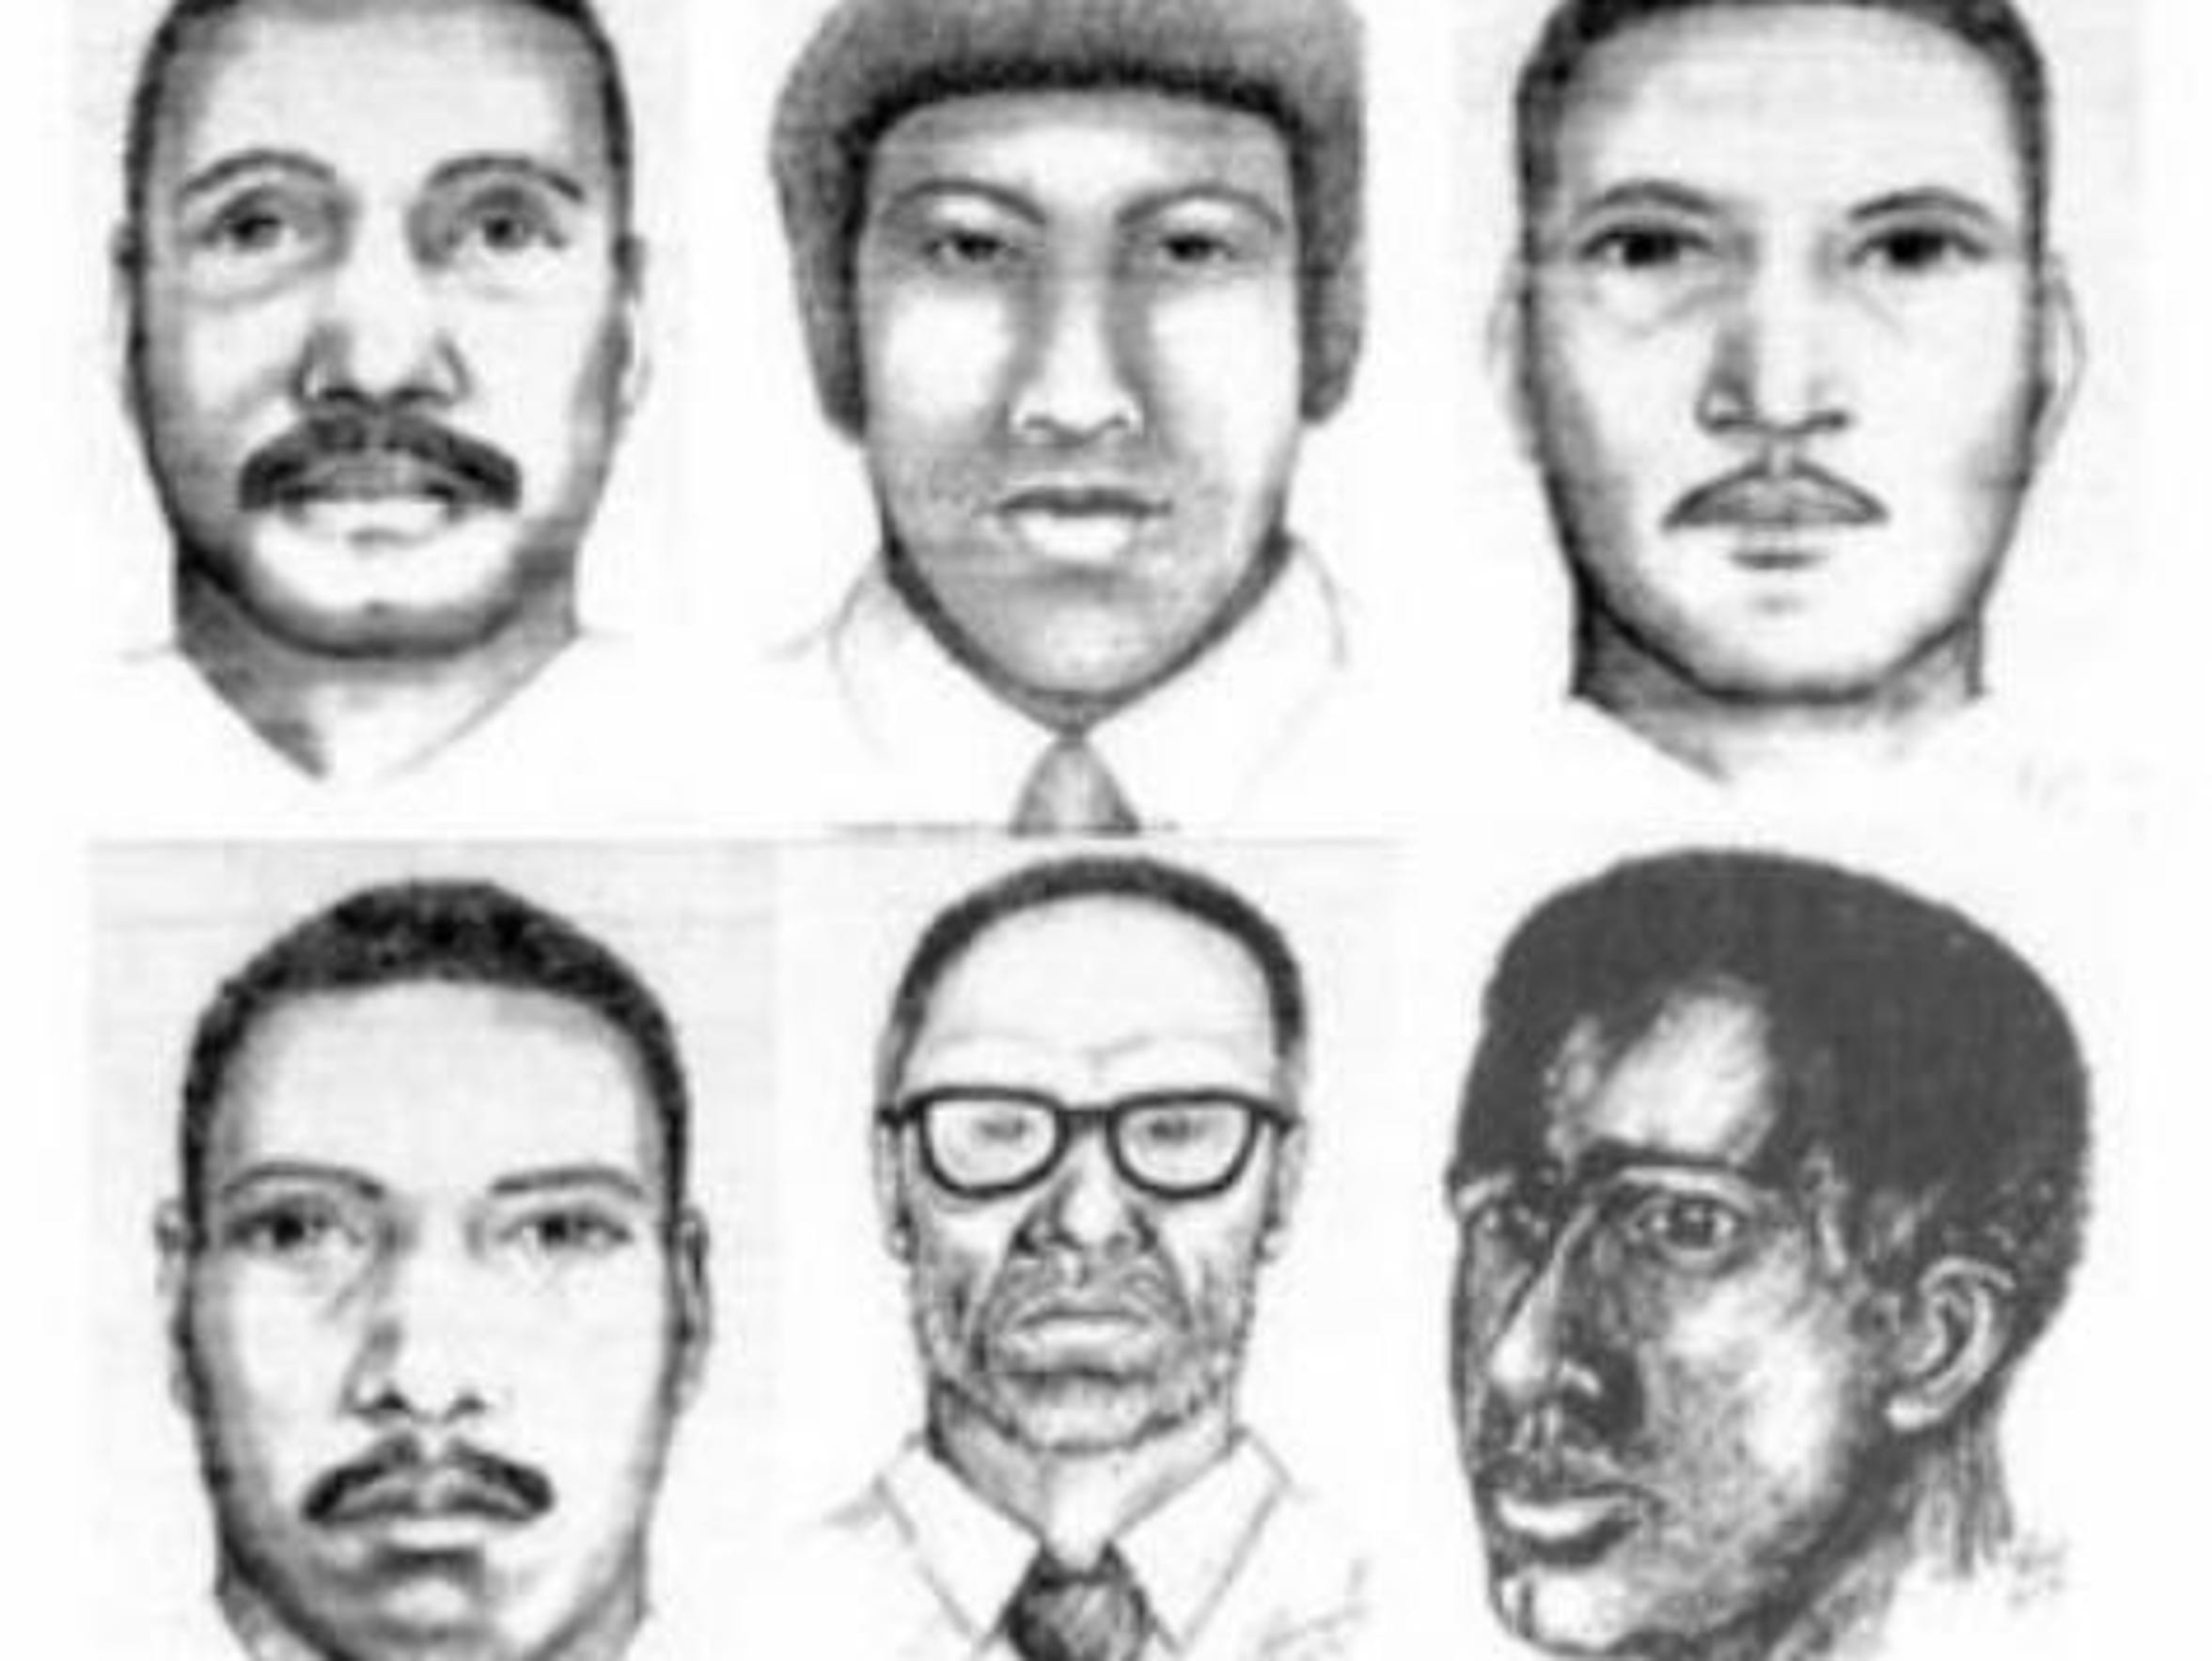 6 suspect sketches1.png